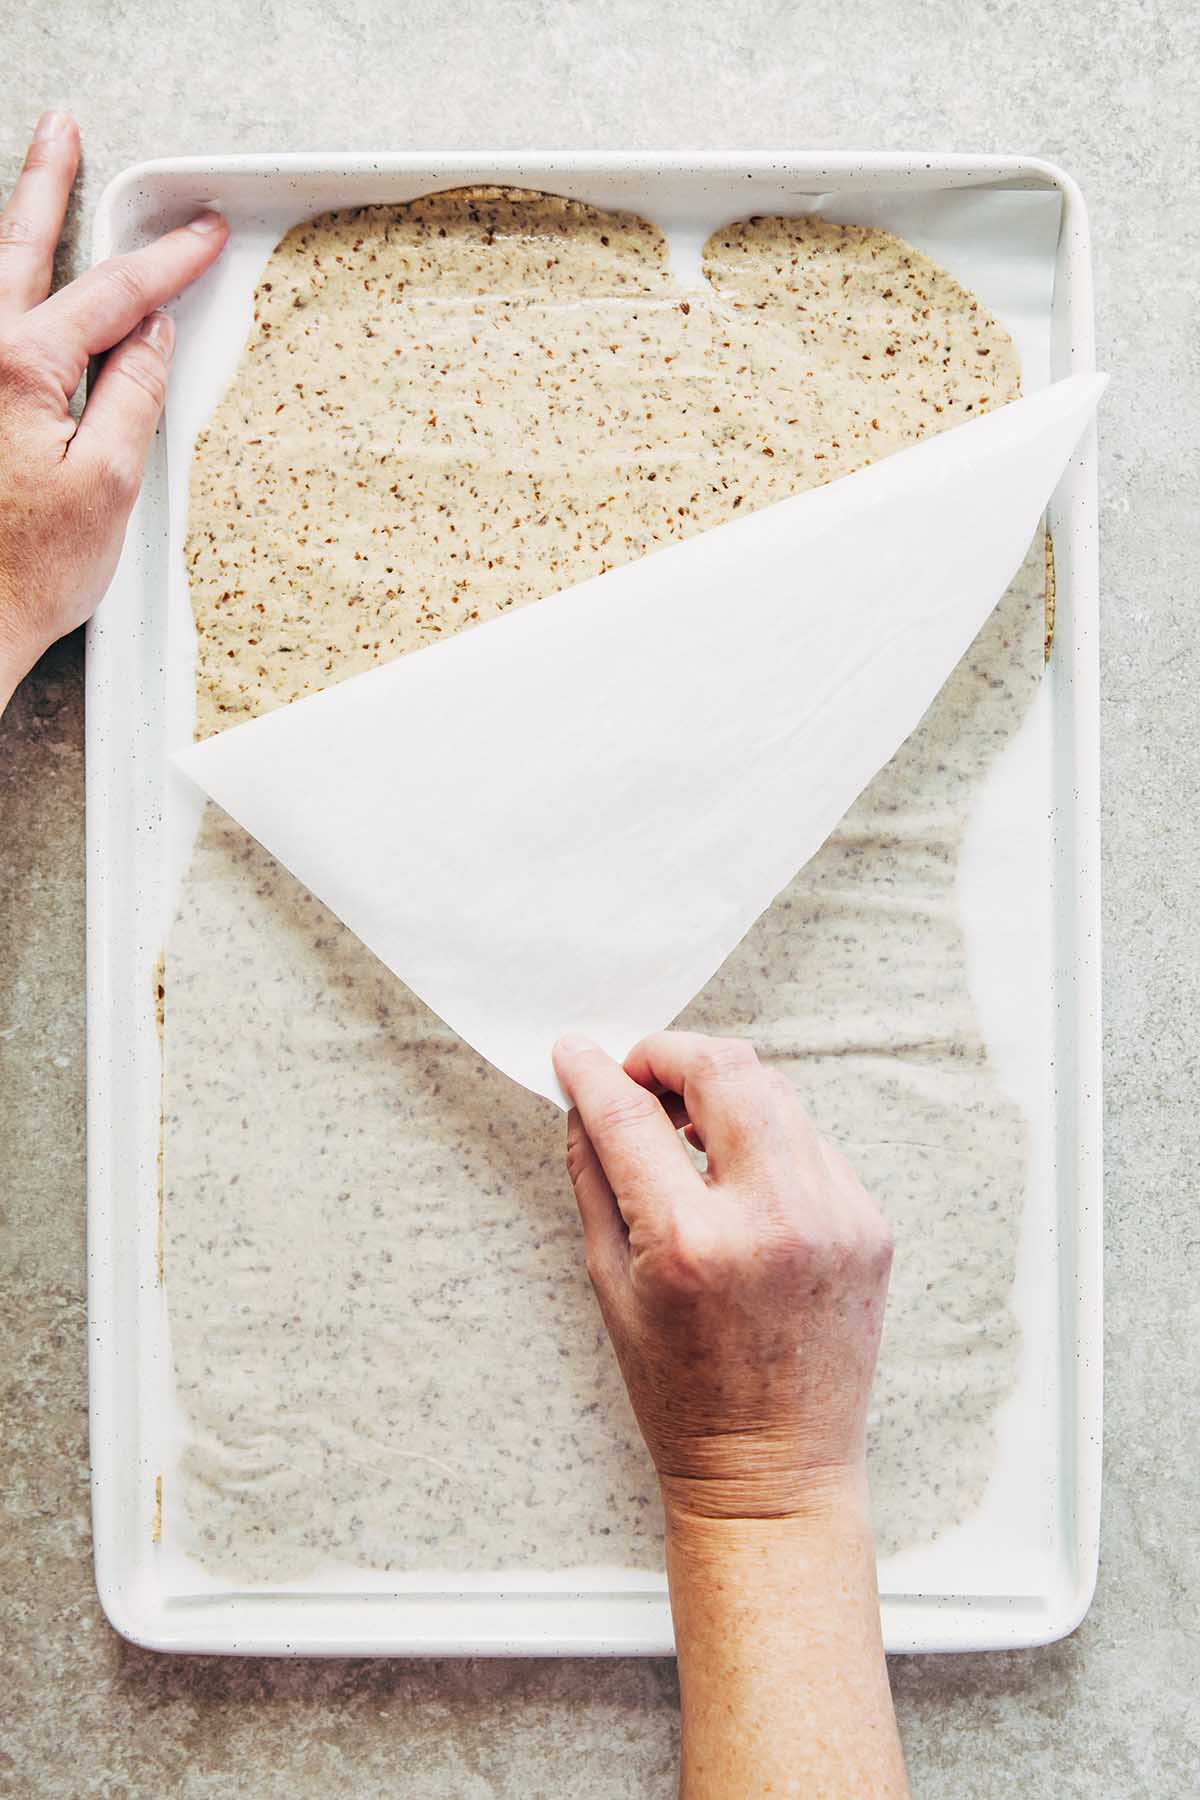 A hand peeling away the top layer of parchment paper from flattened dough.